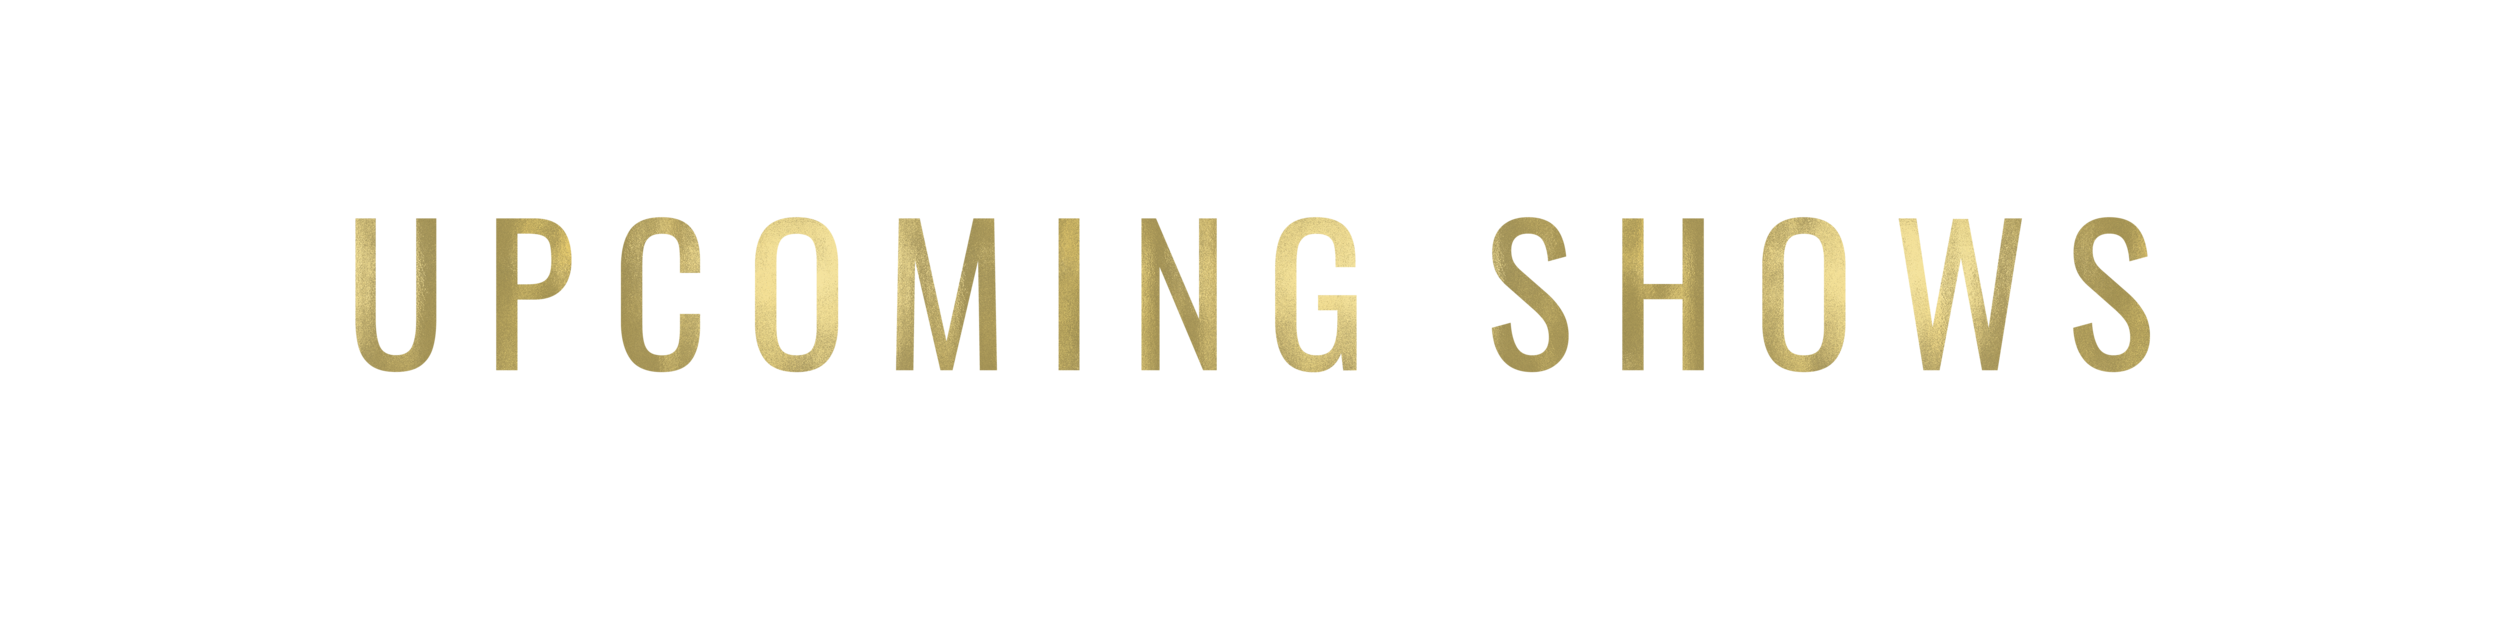 SS_UpcomingShows-01.png